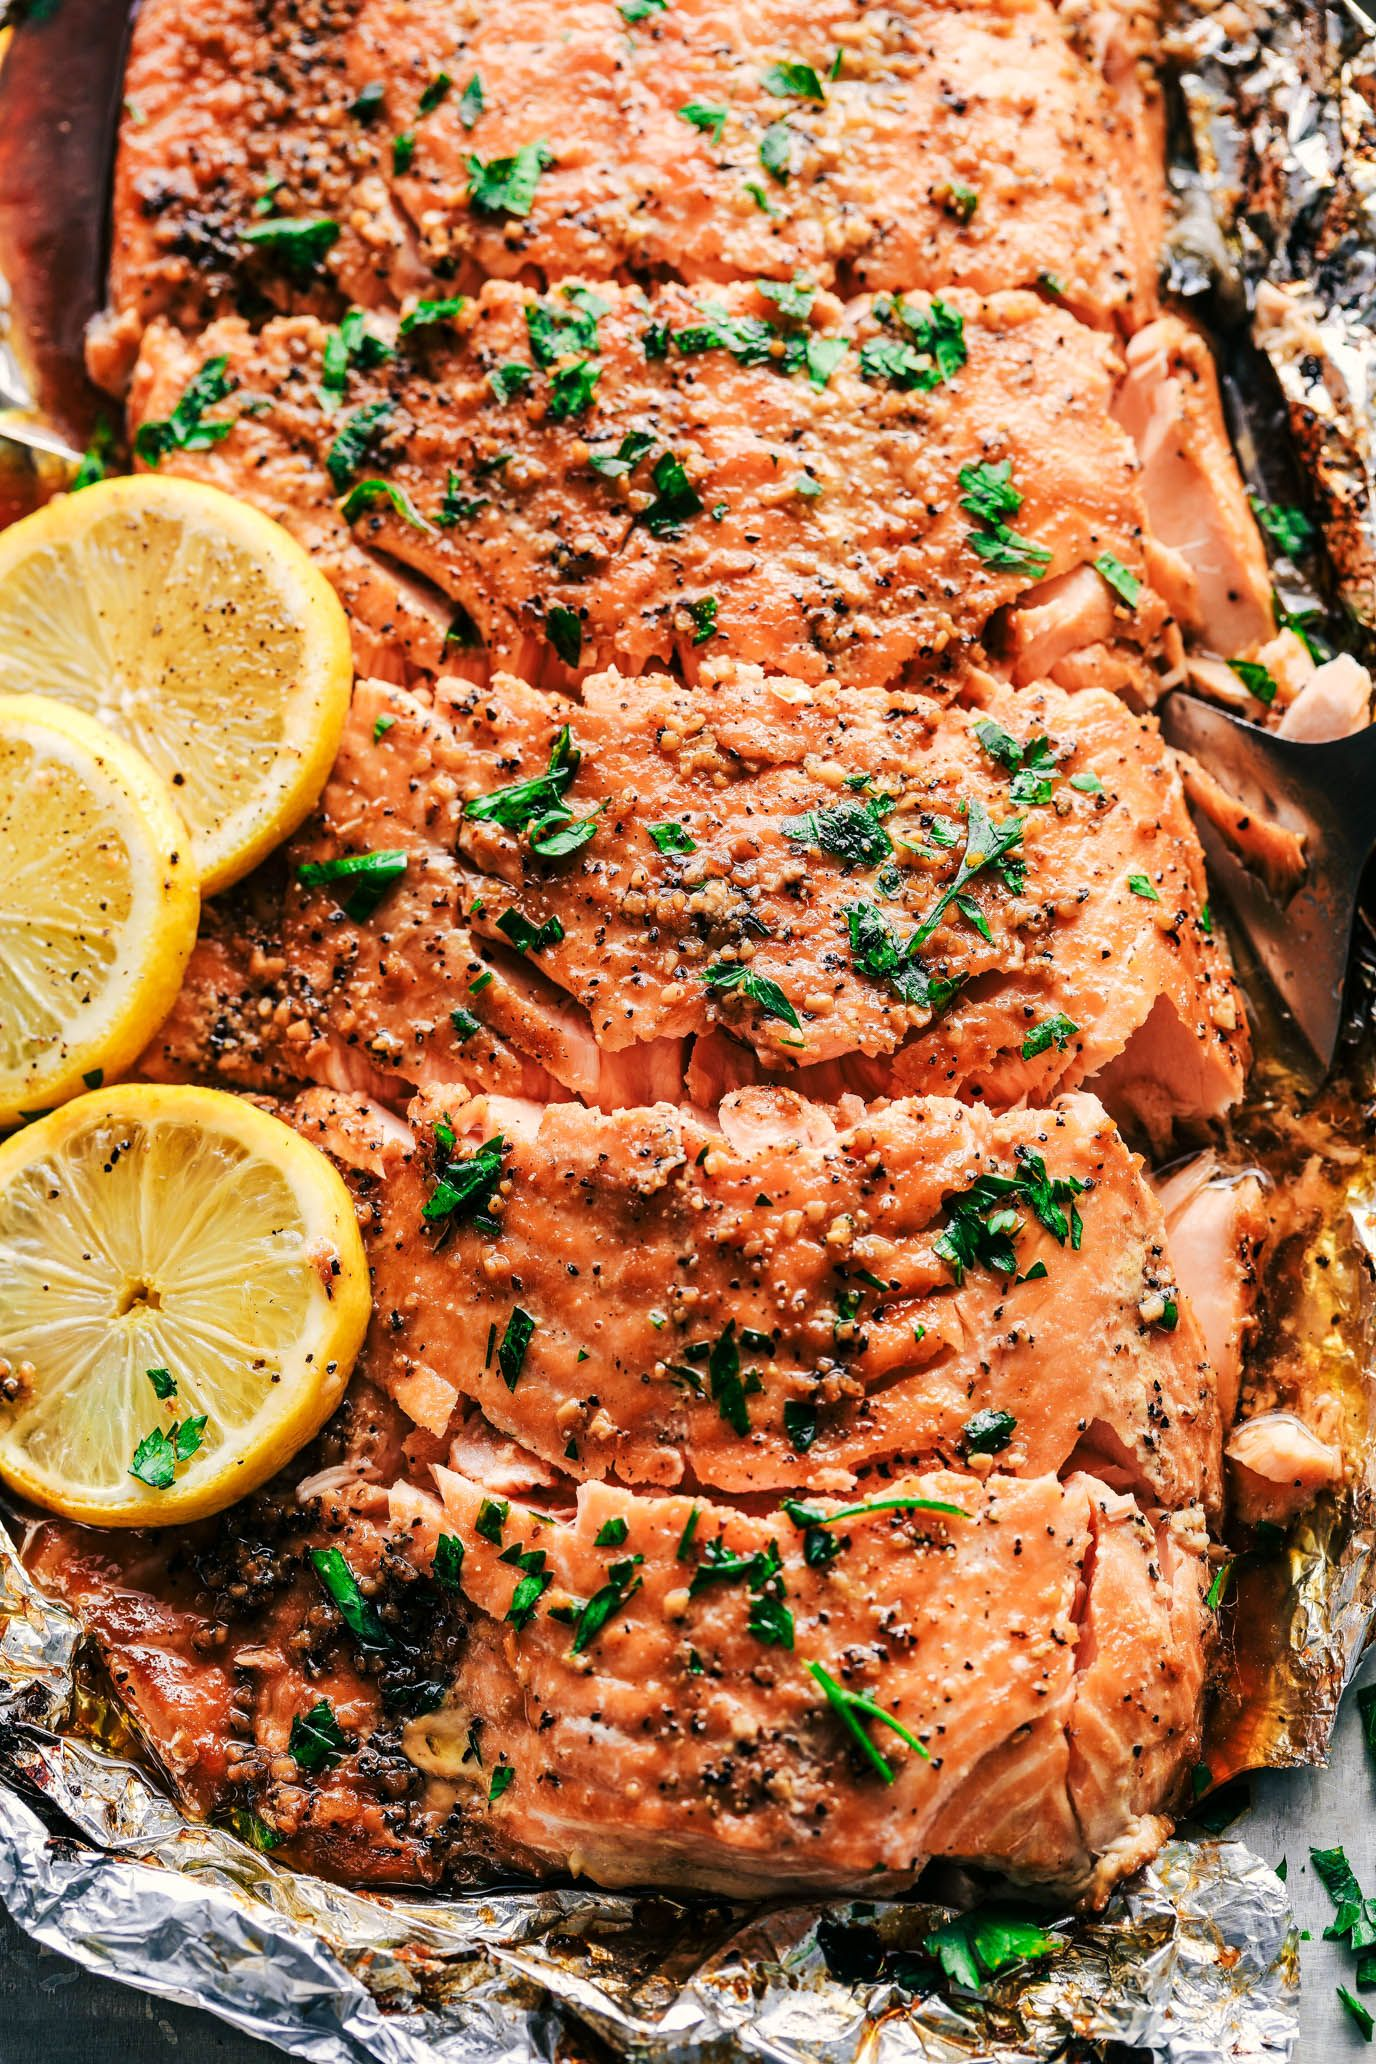 Photo of Garlic Brown Sugar Glazed Salmon (The Best Salmon Ever!) | The Recipe Critic